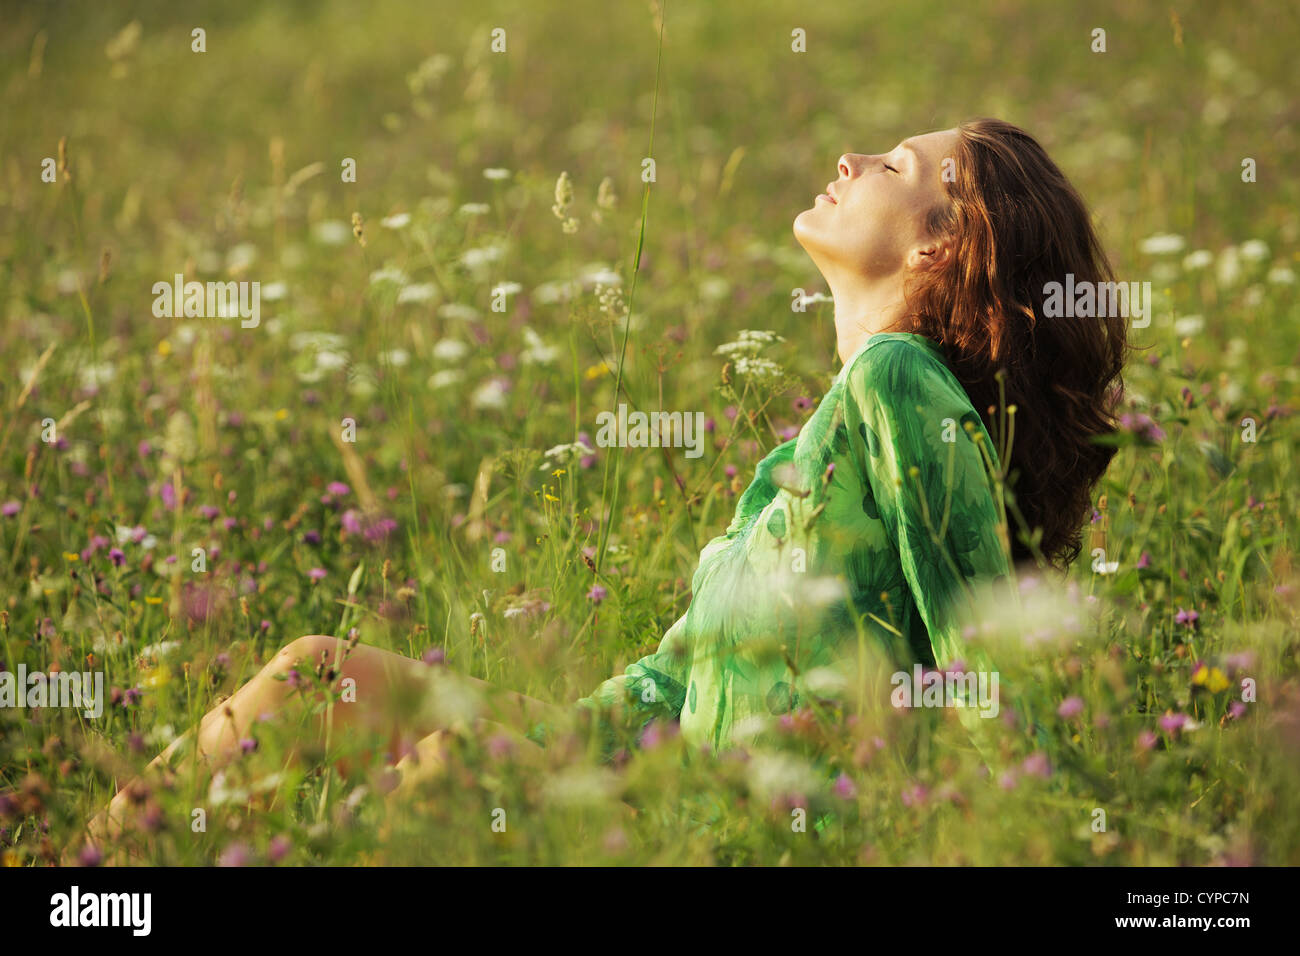 Young beautiful woman enjoying nature in the flowers field - Stock Image